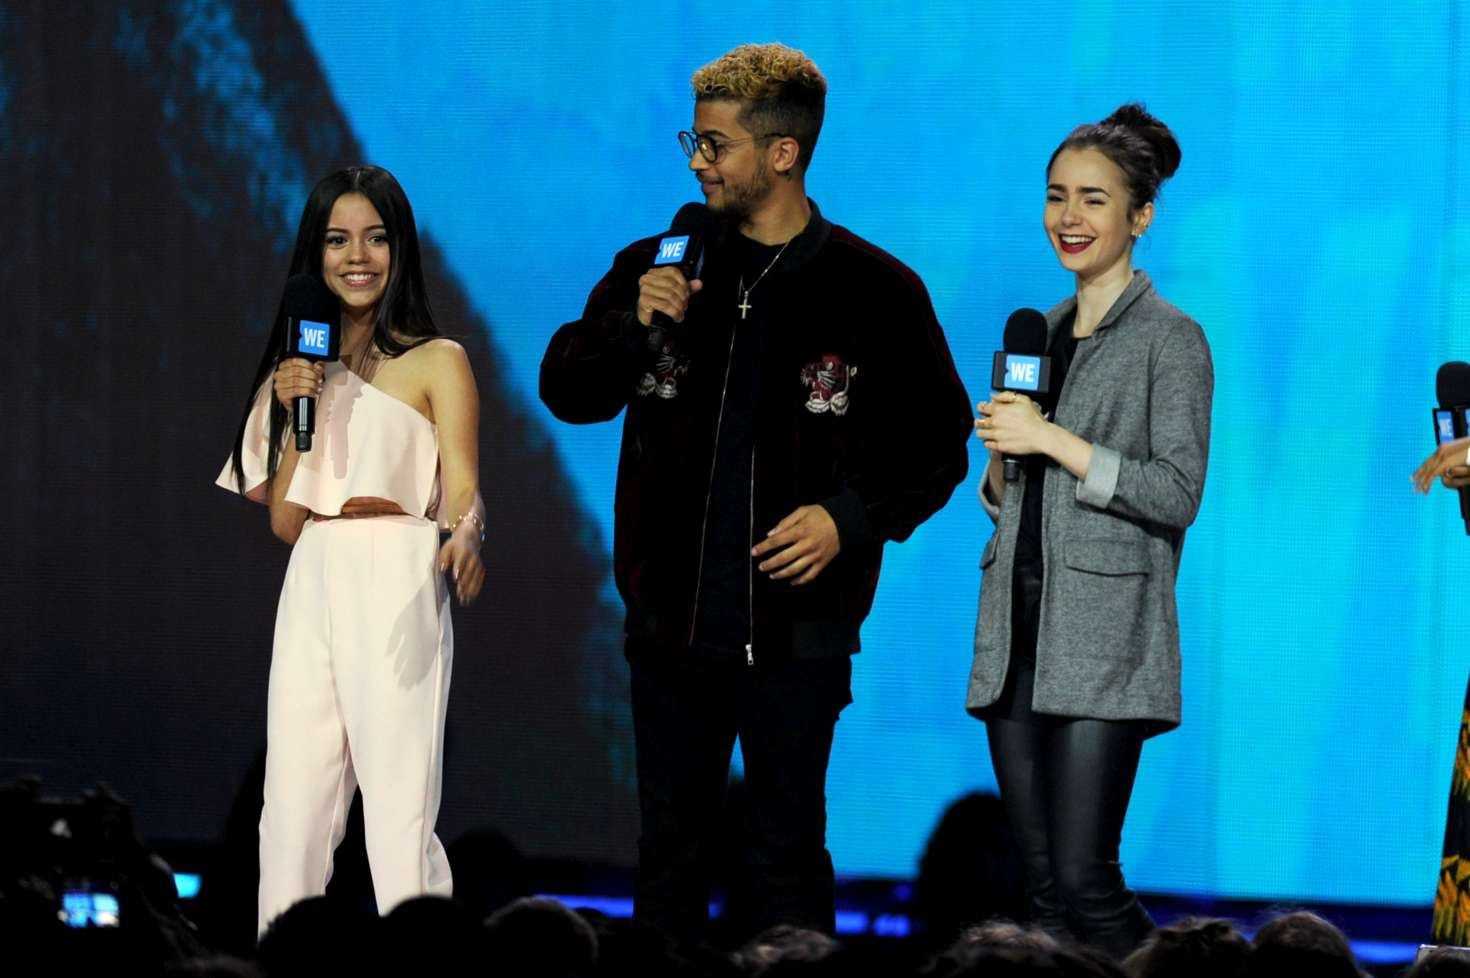 Jenna ortega hosts we day in seattle april 2019 - 2019 year